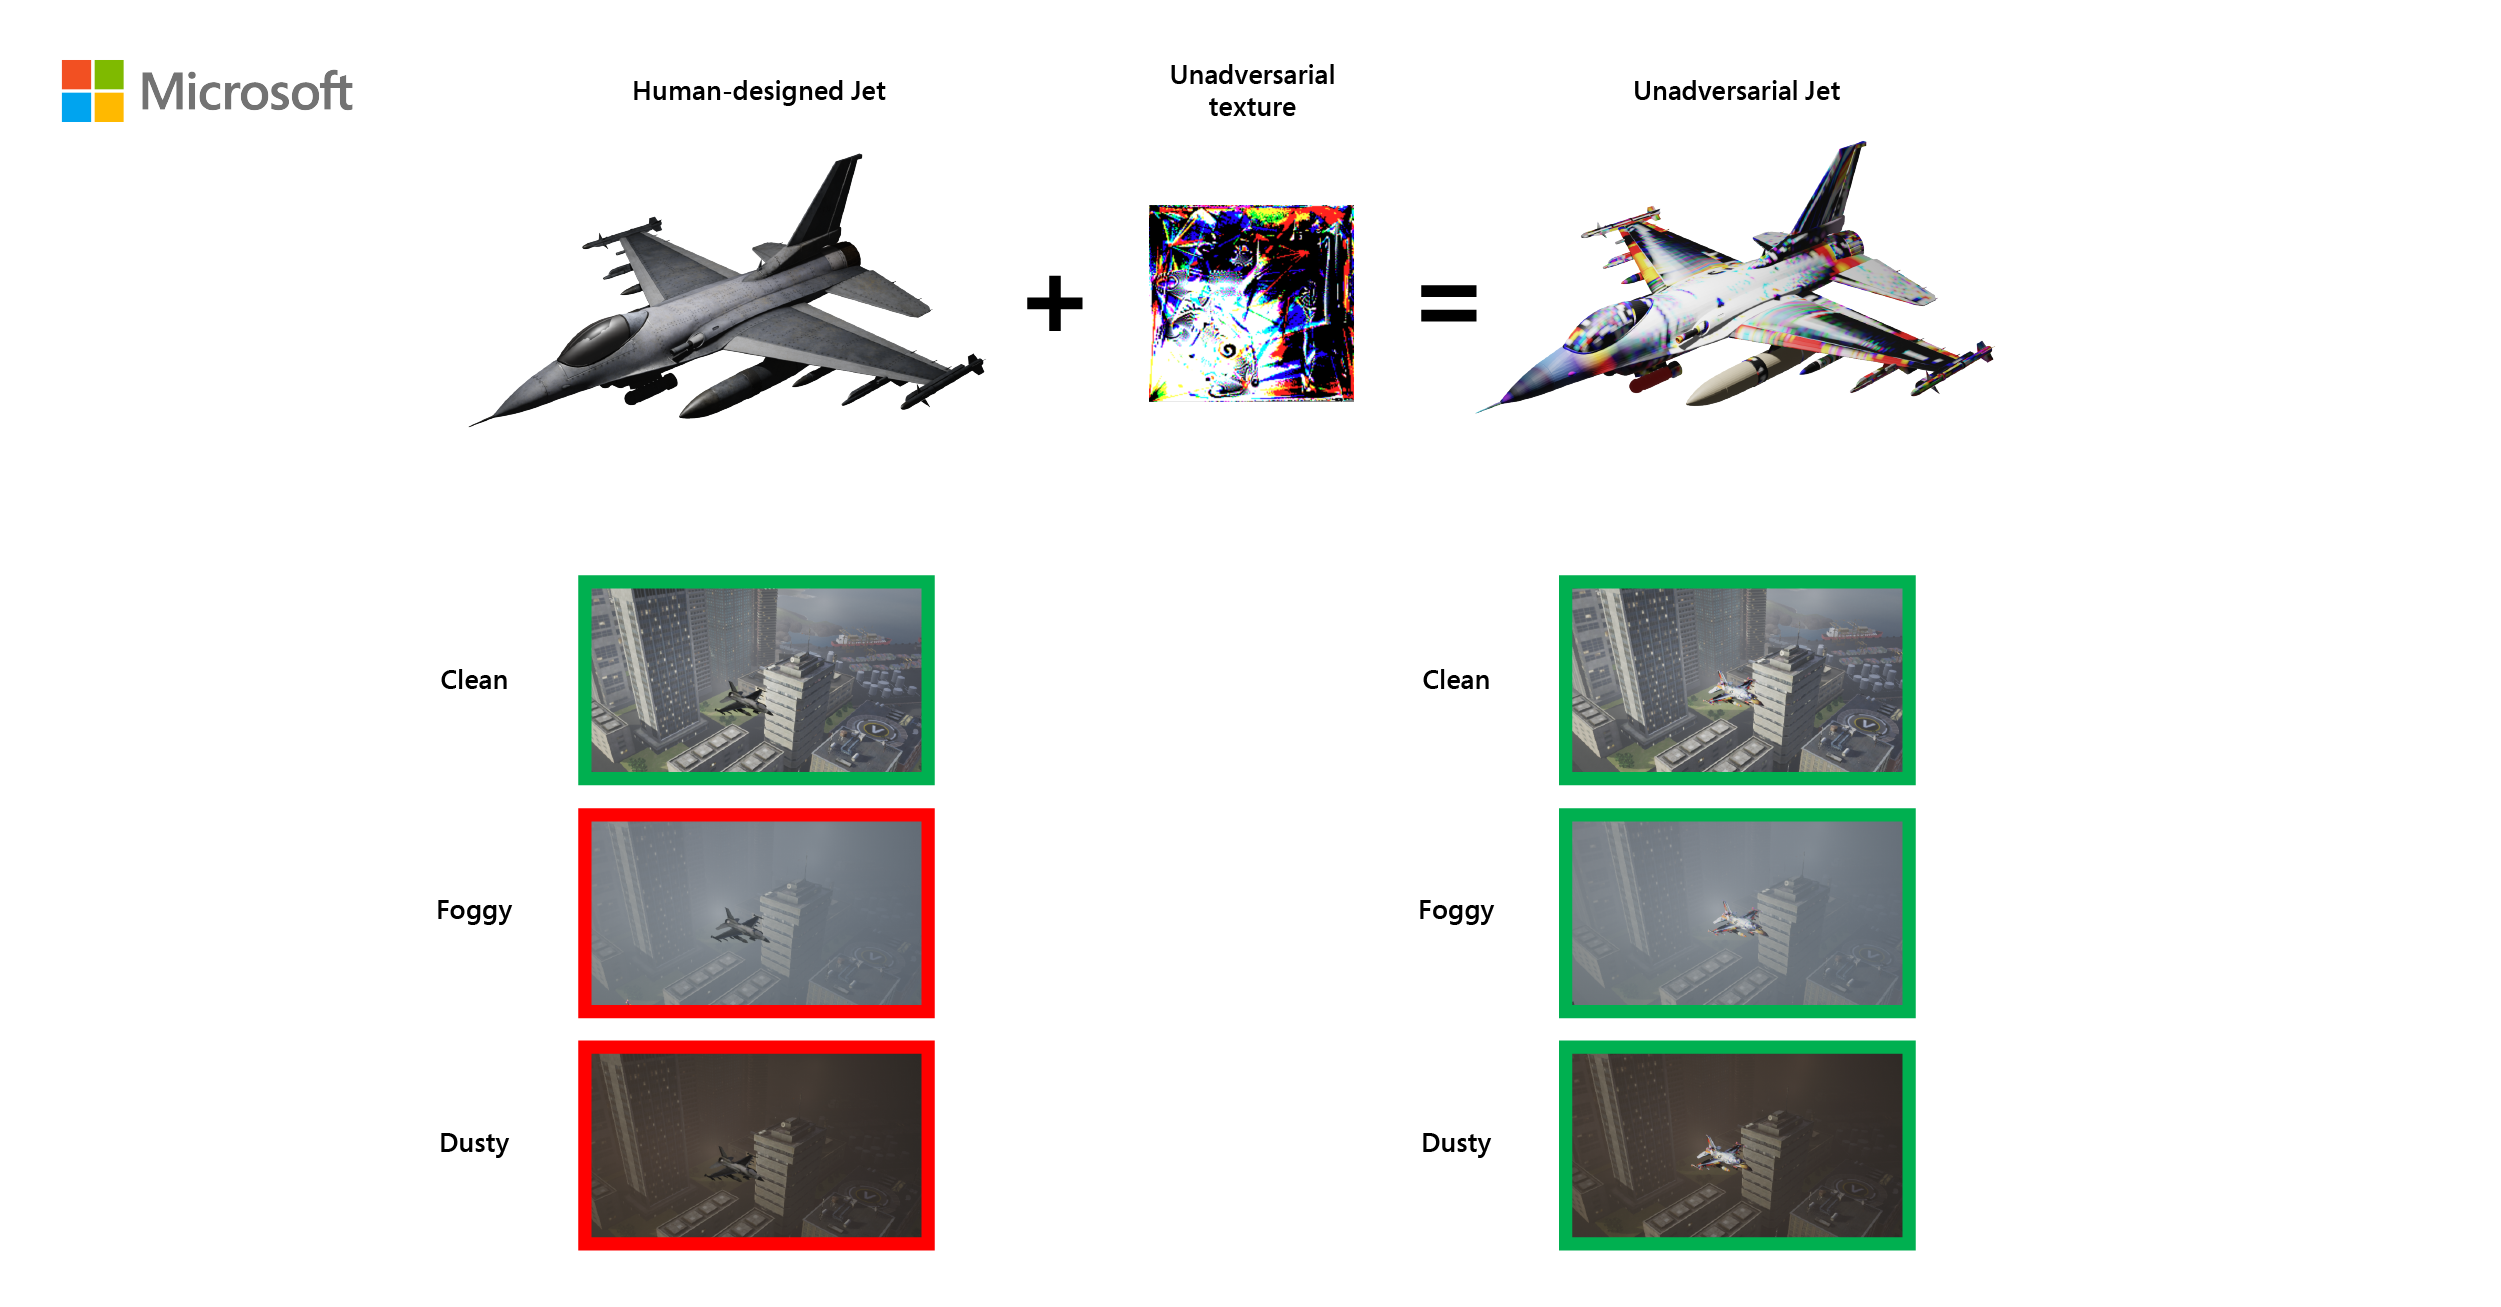 Unadversarial examples: Designing objects for robust vision